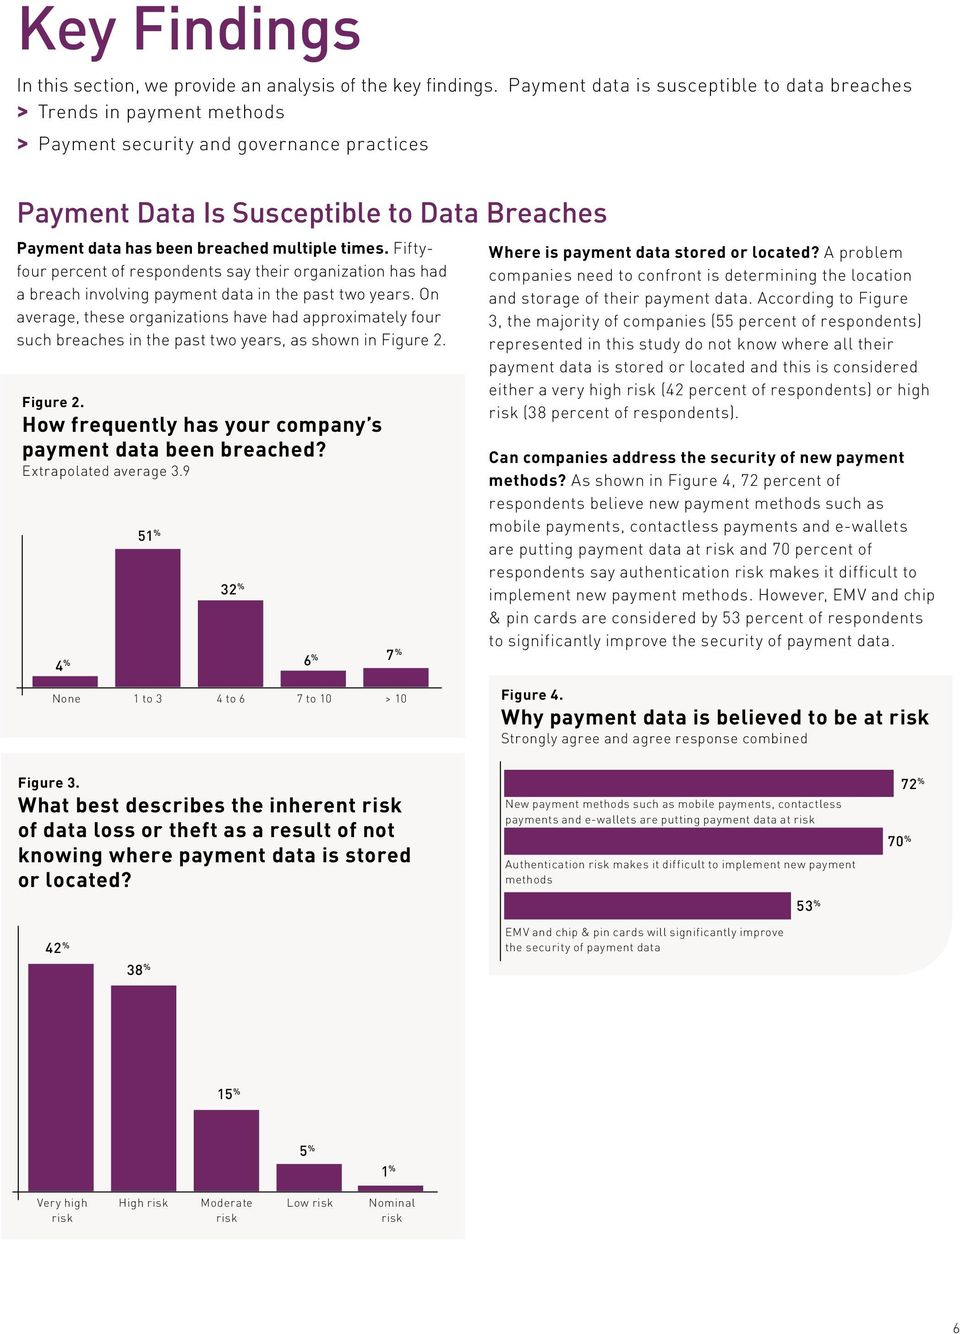 multiple times. Fiftyfour percent of respondents say their organization has had a breach involving payment data in the past two years.